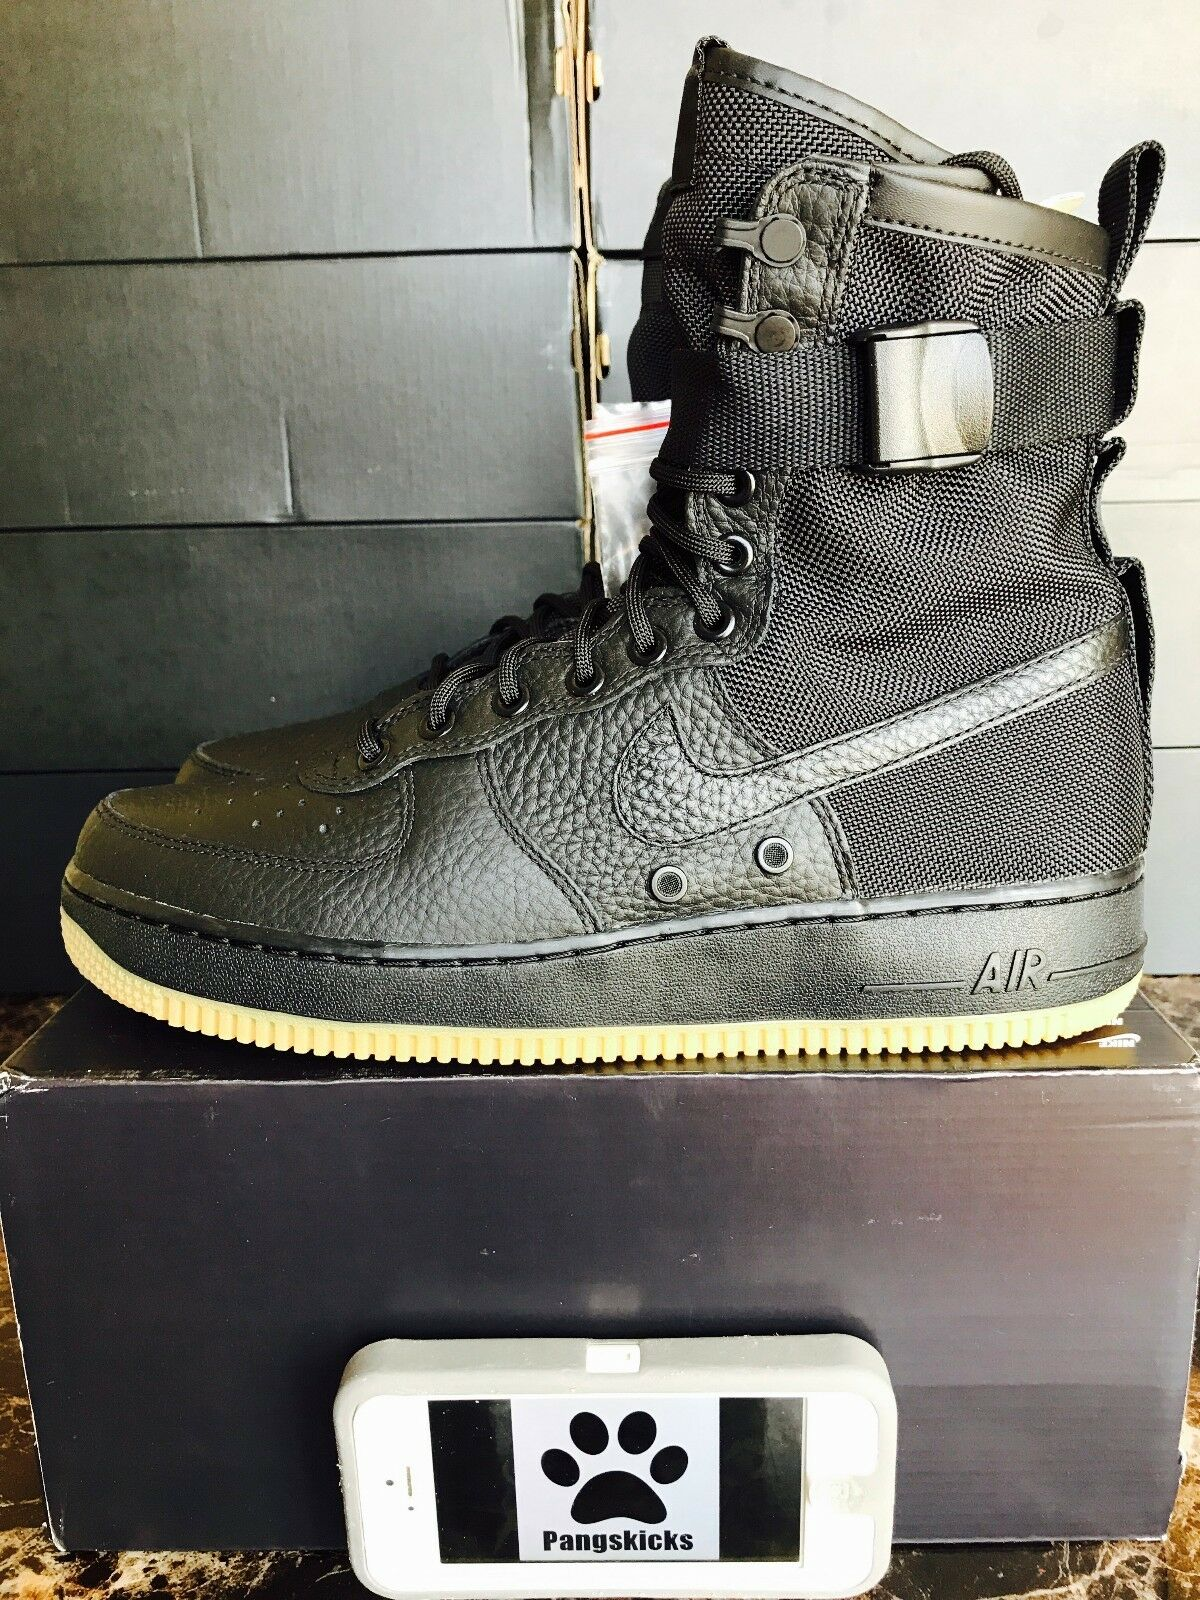 nike air force 1 sf domaine 7.5-11.5 af1 taille 7.5-11.5 domaine 864024-001 chewing - gum noir 8ae59c